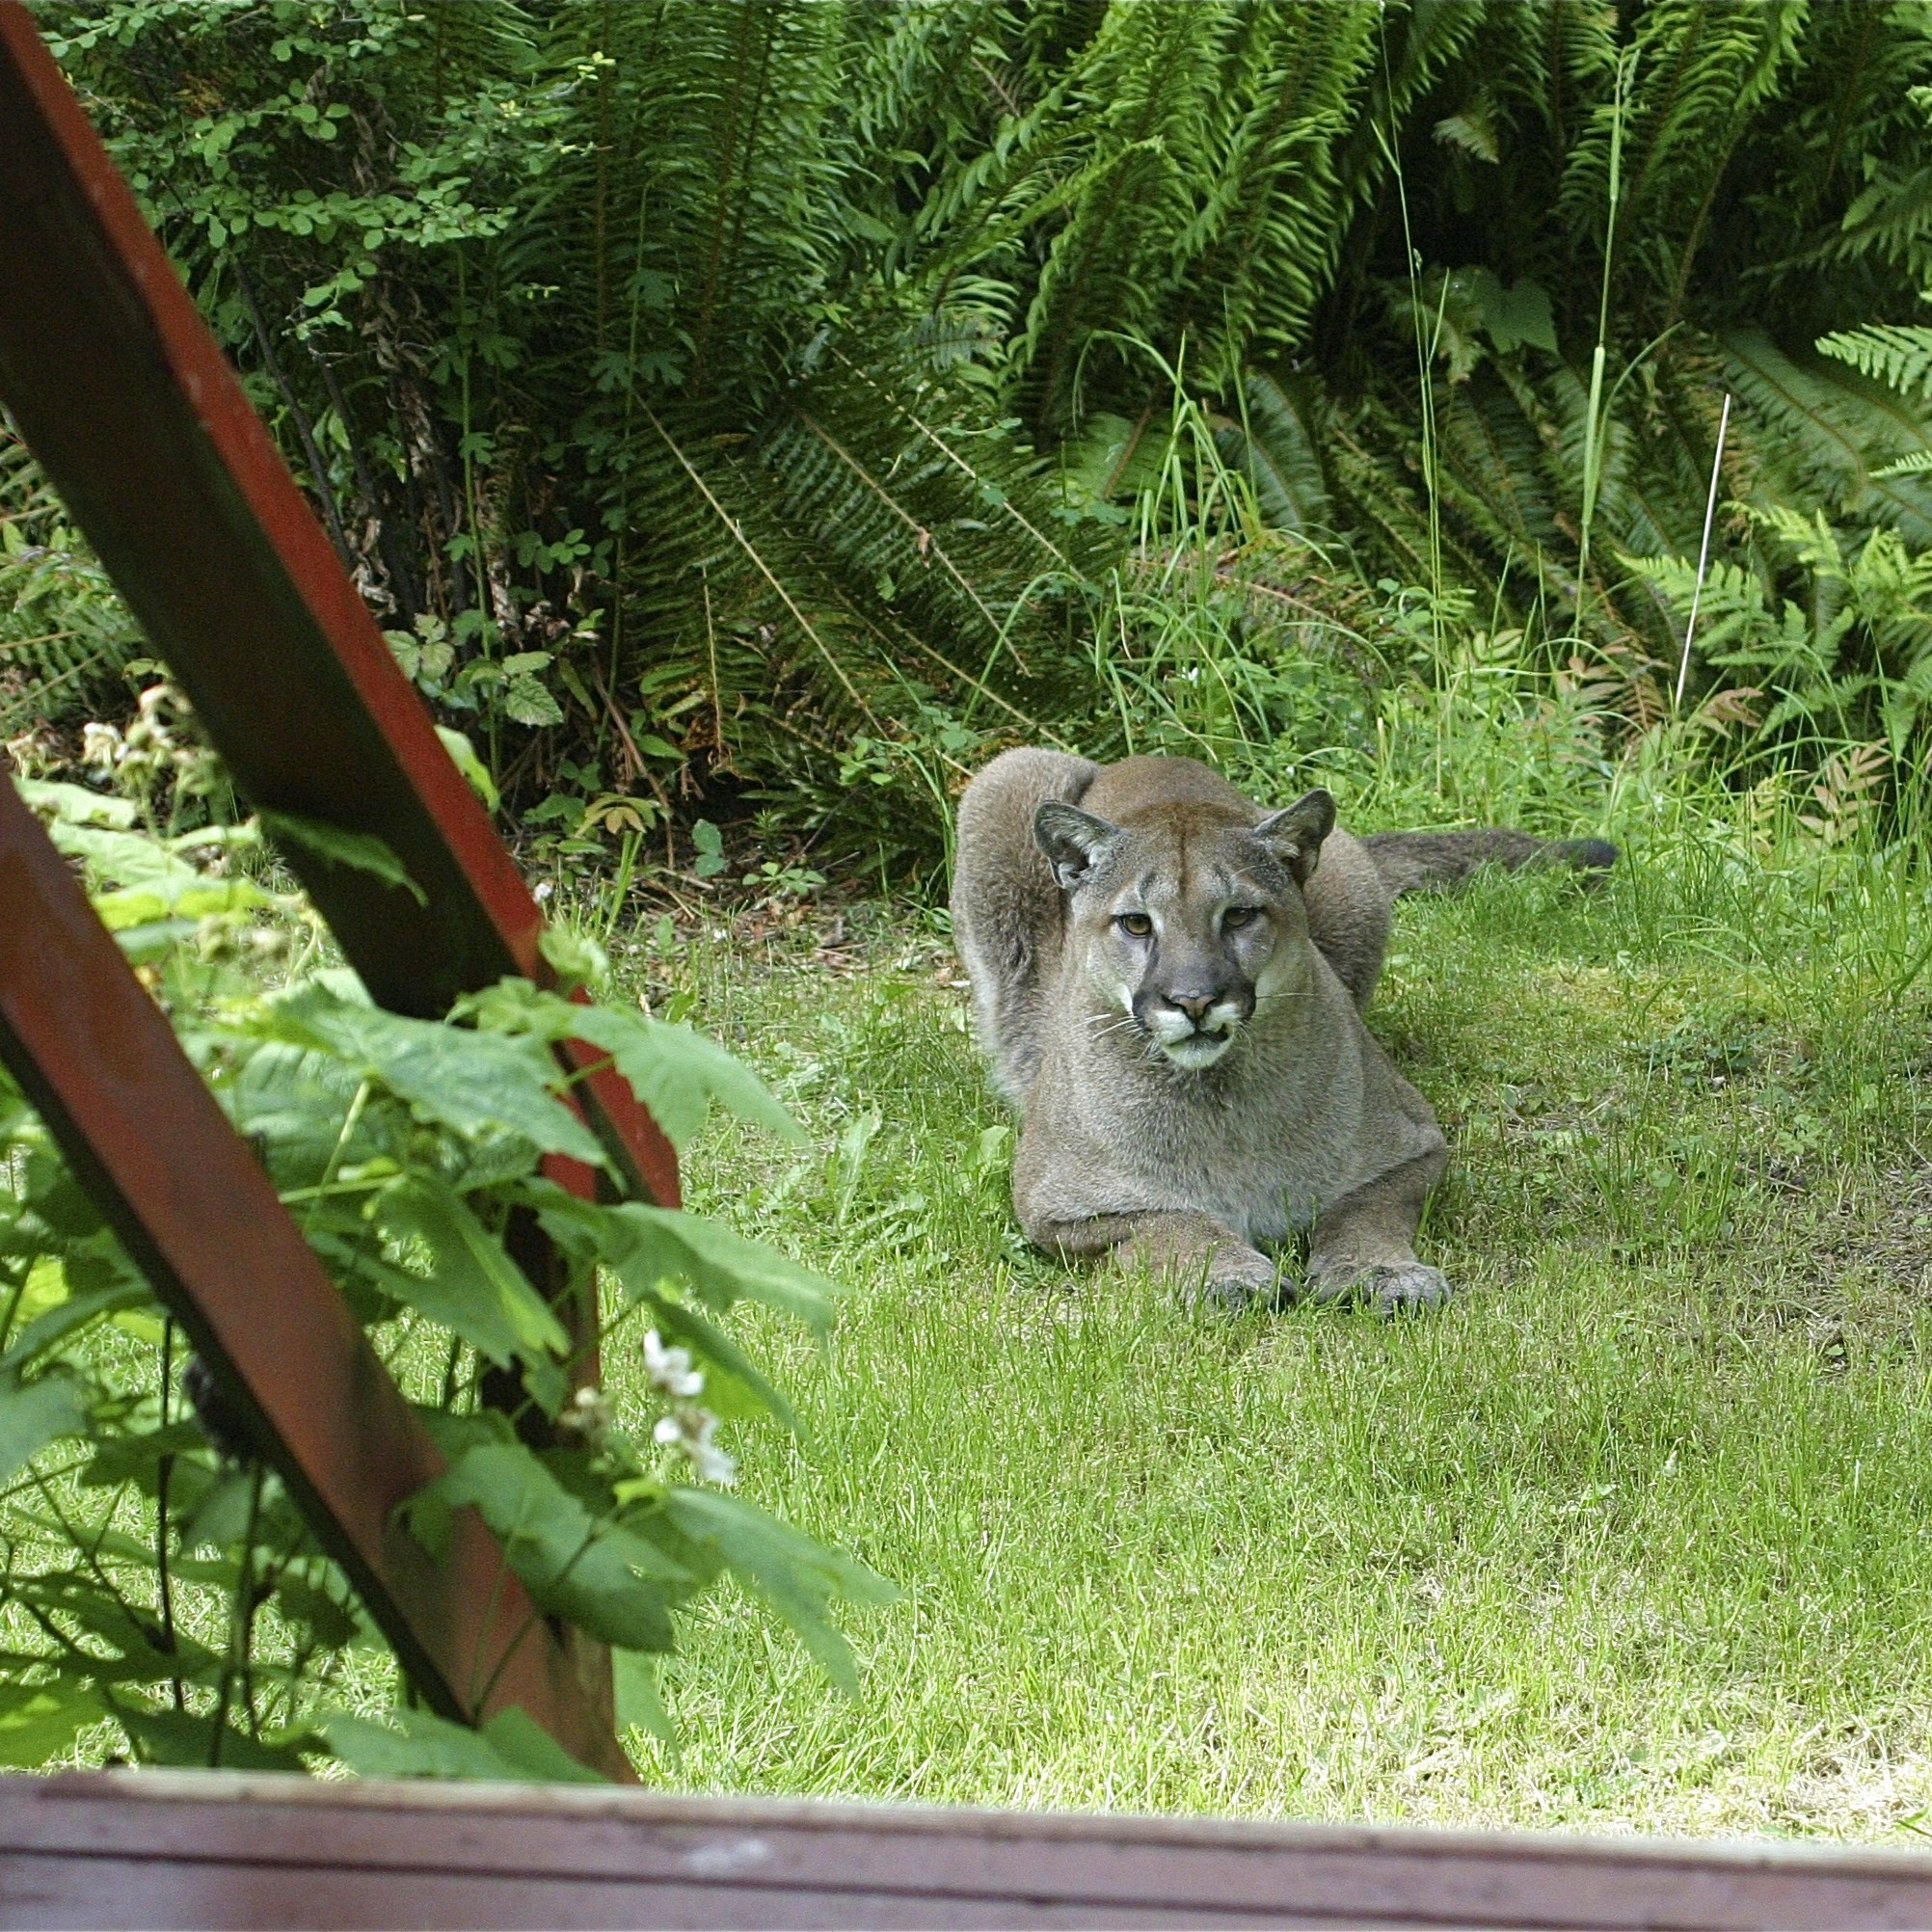 Cougar near porch of hermitage - charles brandt photo